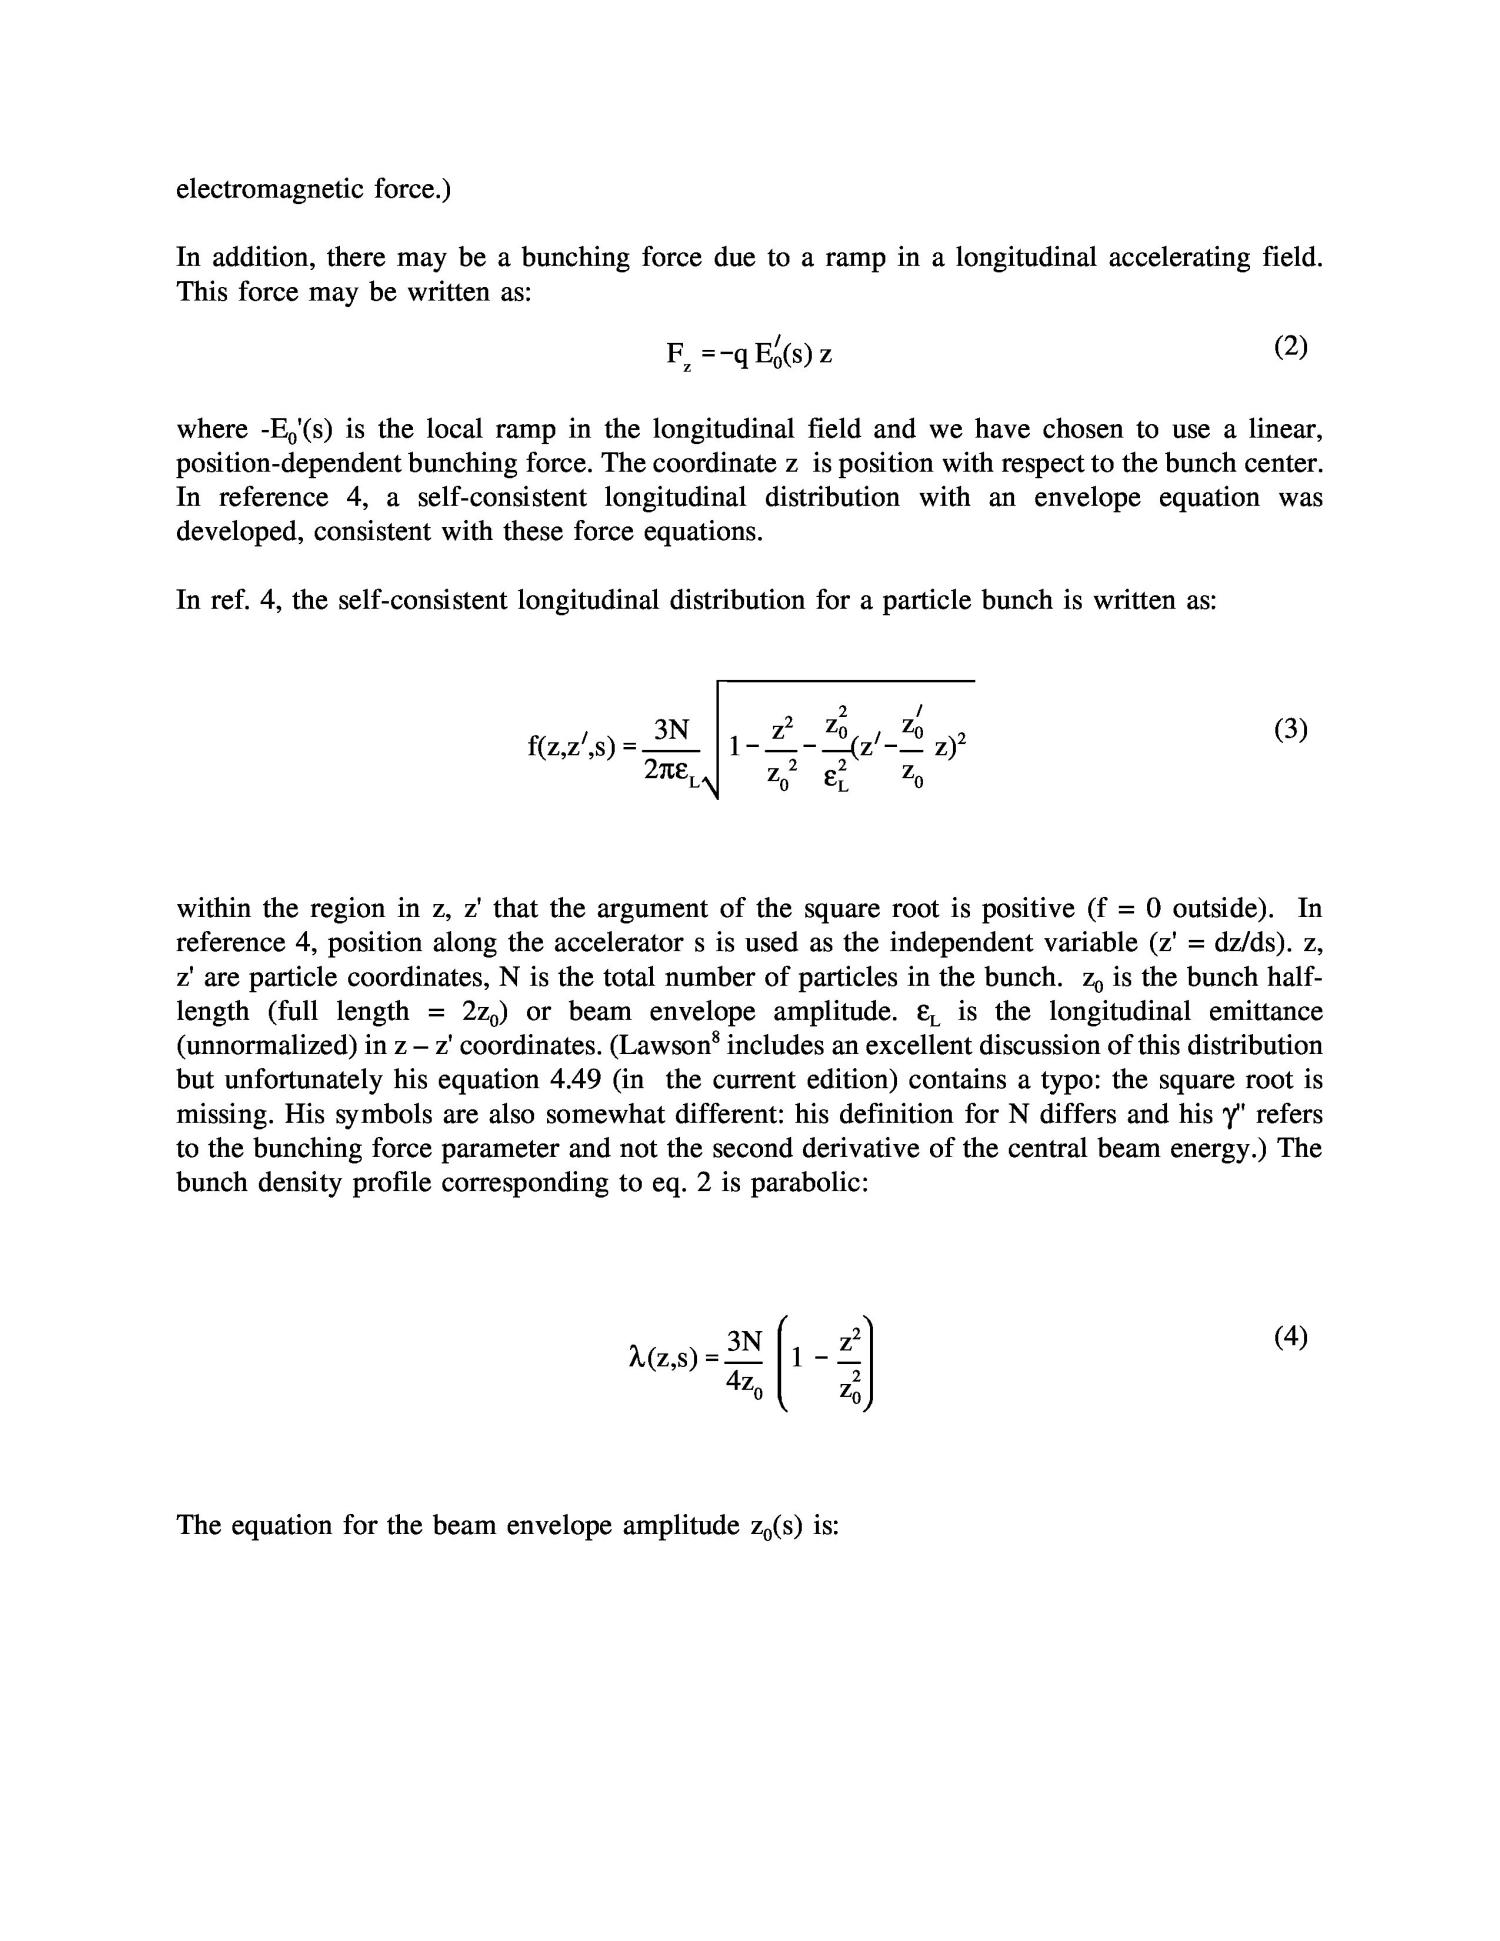 Extensions of the longitudinal envelope equation                                                                                                      [Sequence #]: 2 of 8